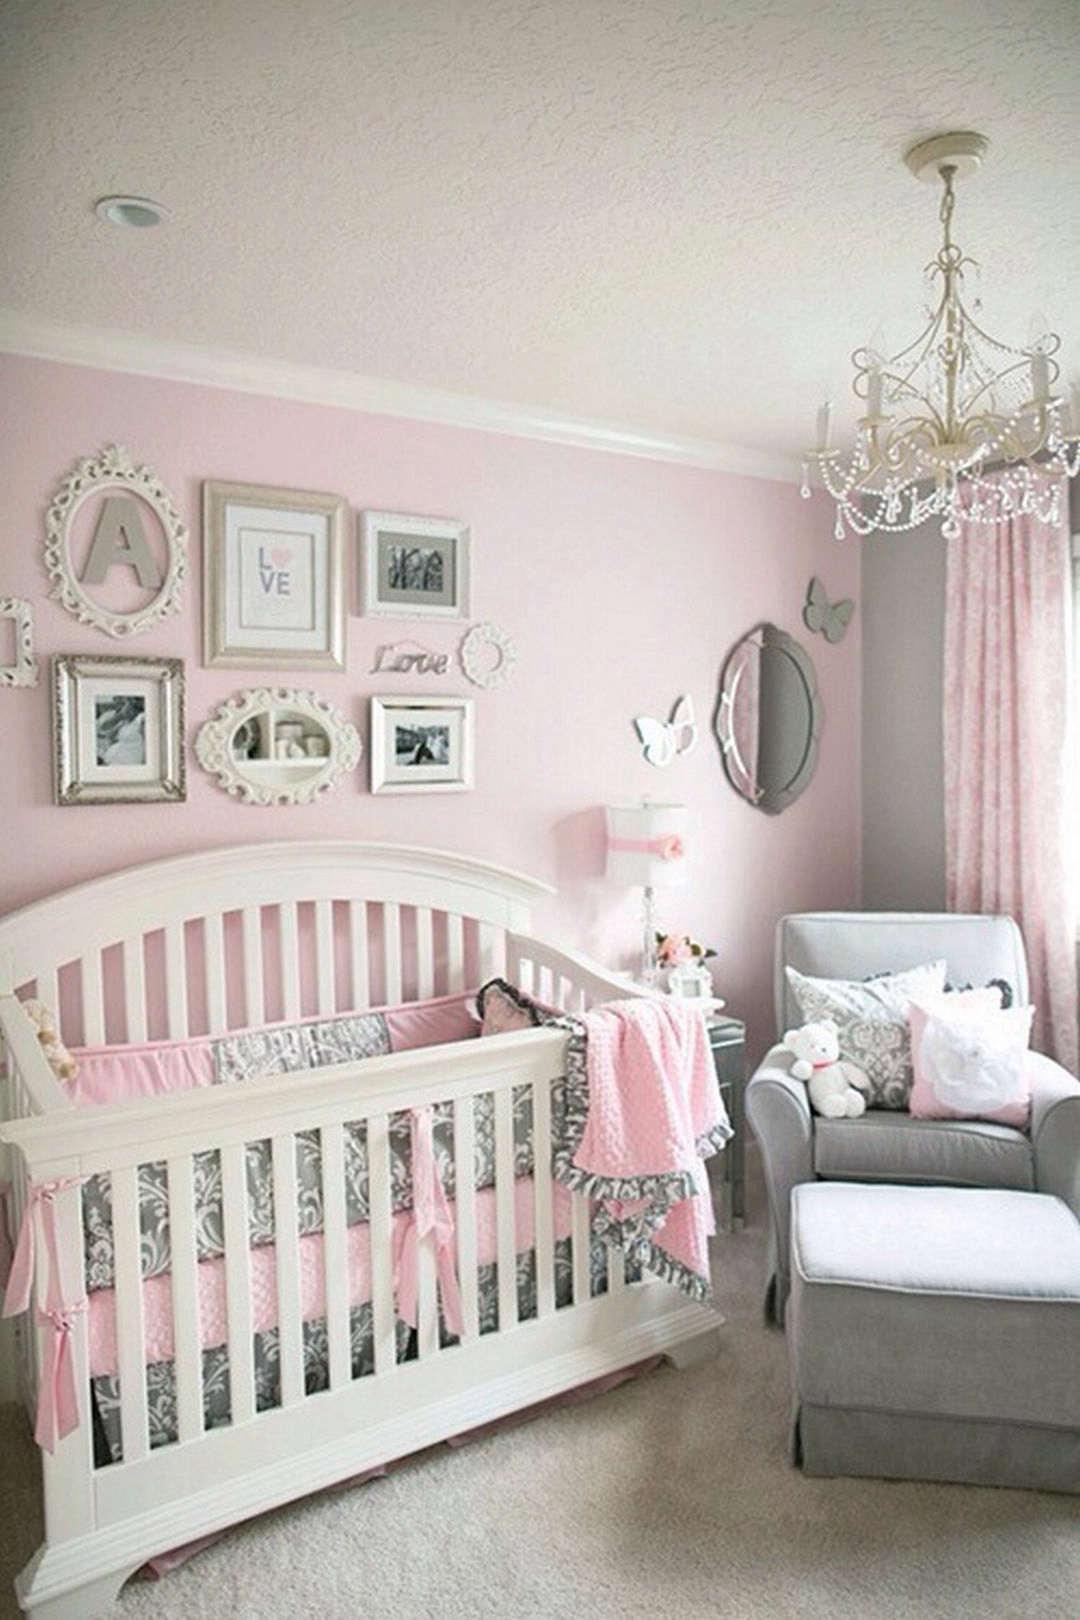 6 actionable tips on baby girl nursery gorgeous interior ideaspink and grey nursery baby girl, nursery ideas girl grey